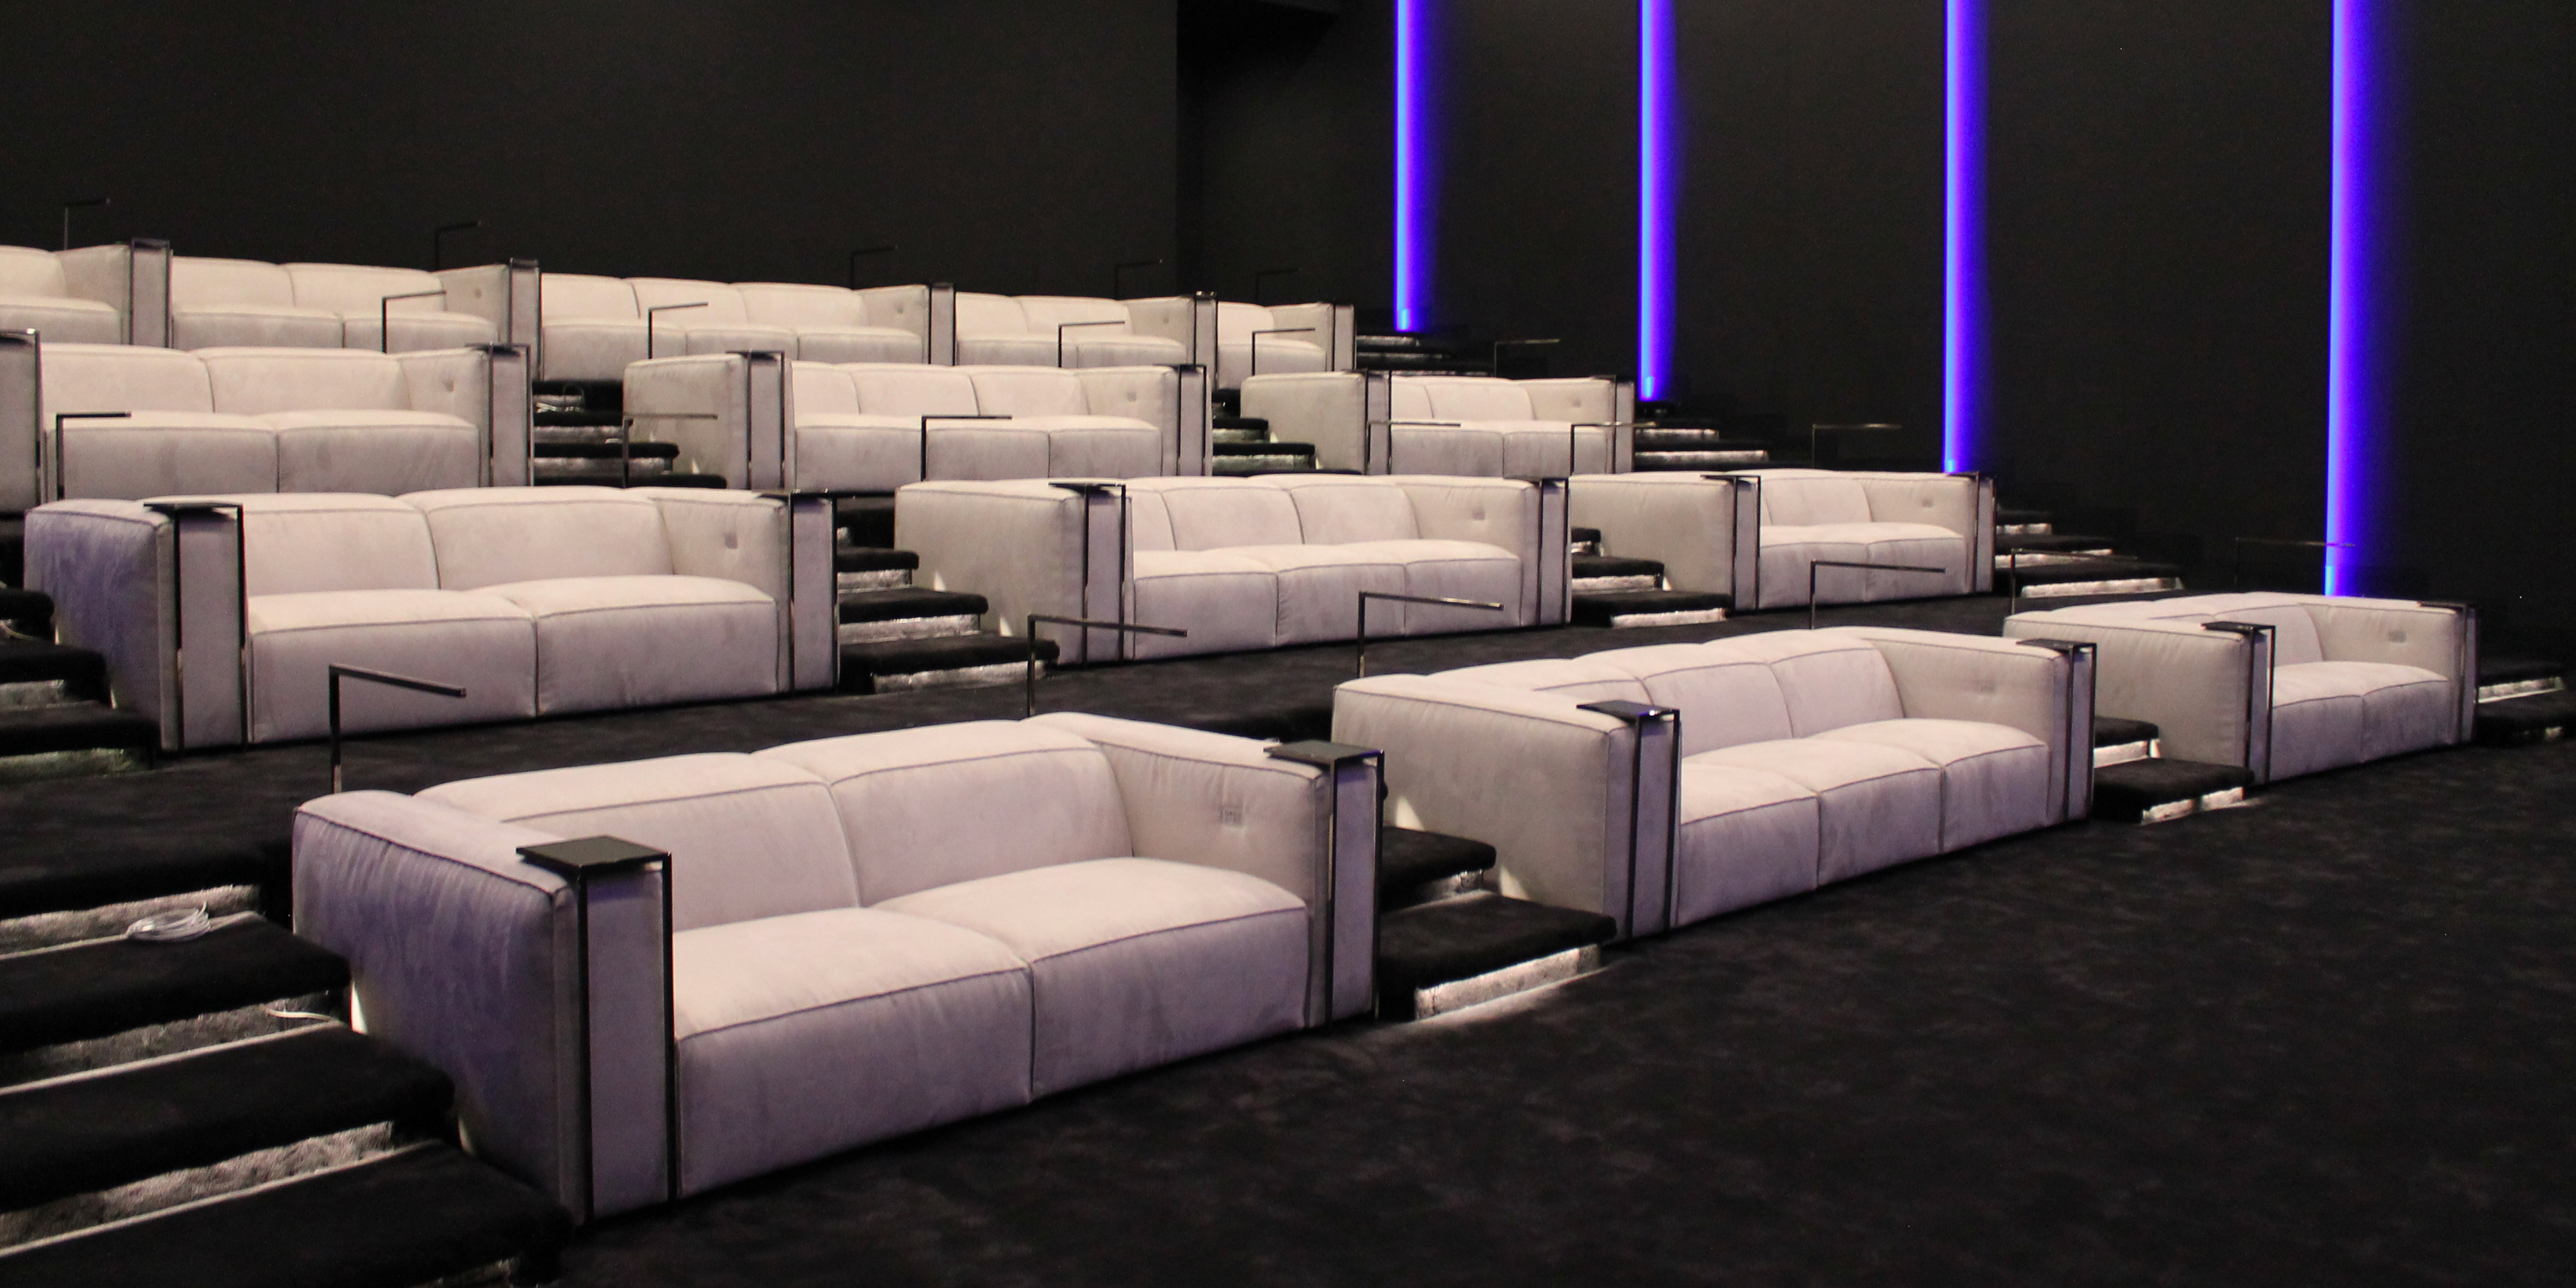 Gramercy Luxury theater, the one Los angeles